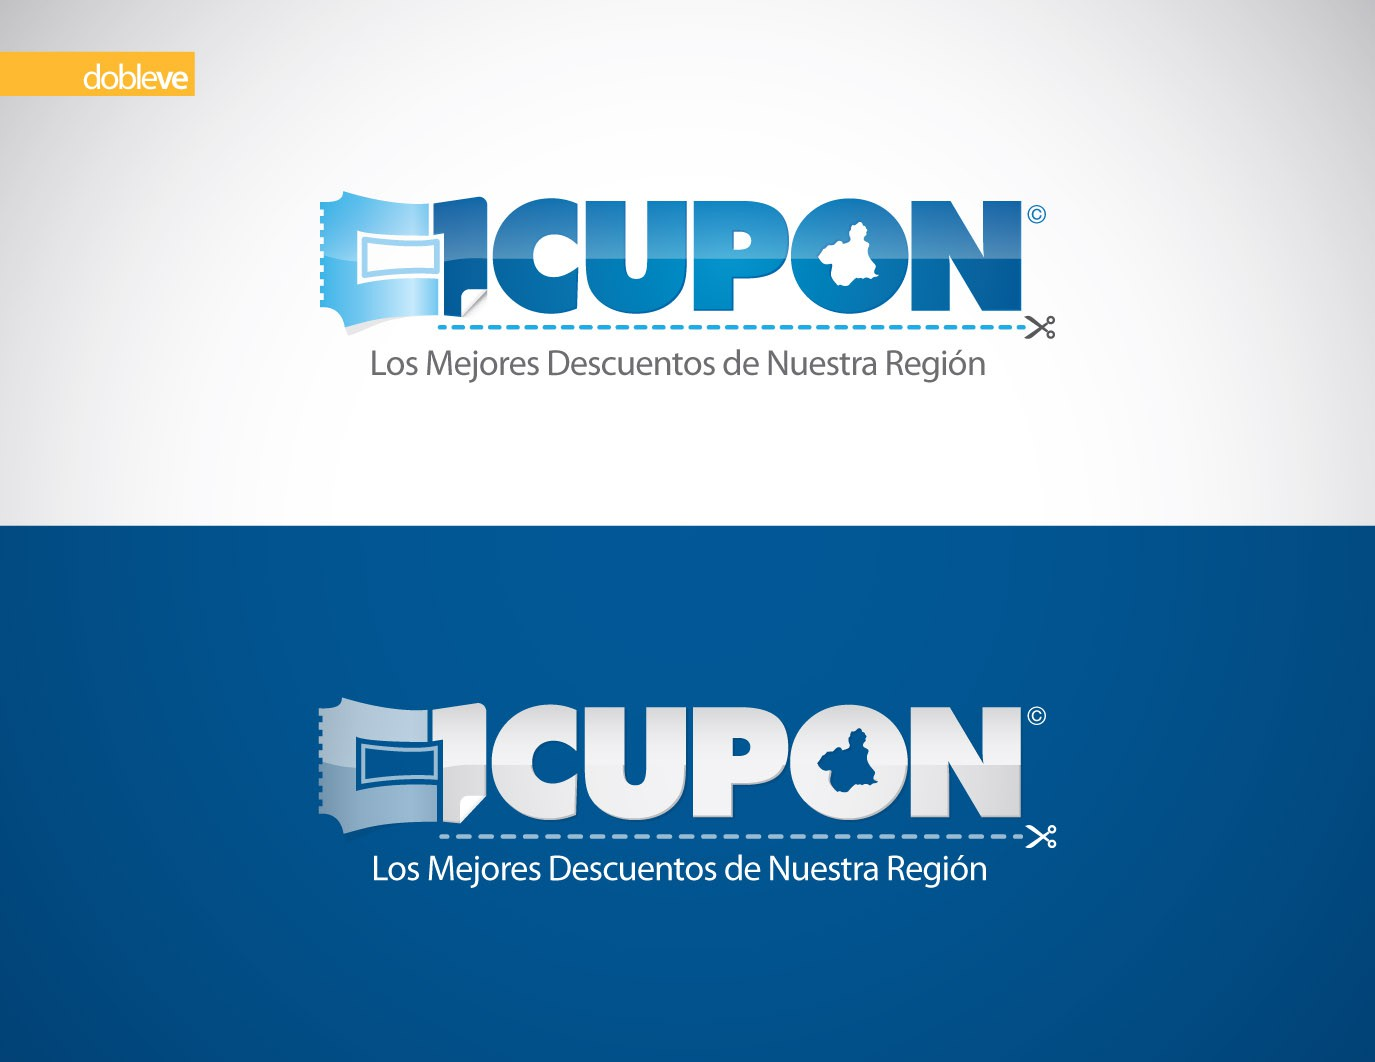 1cupon (1coupon in english) needs a new logo